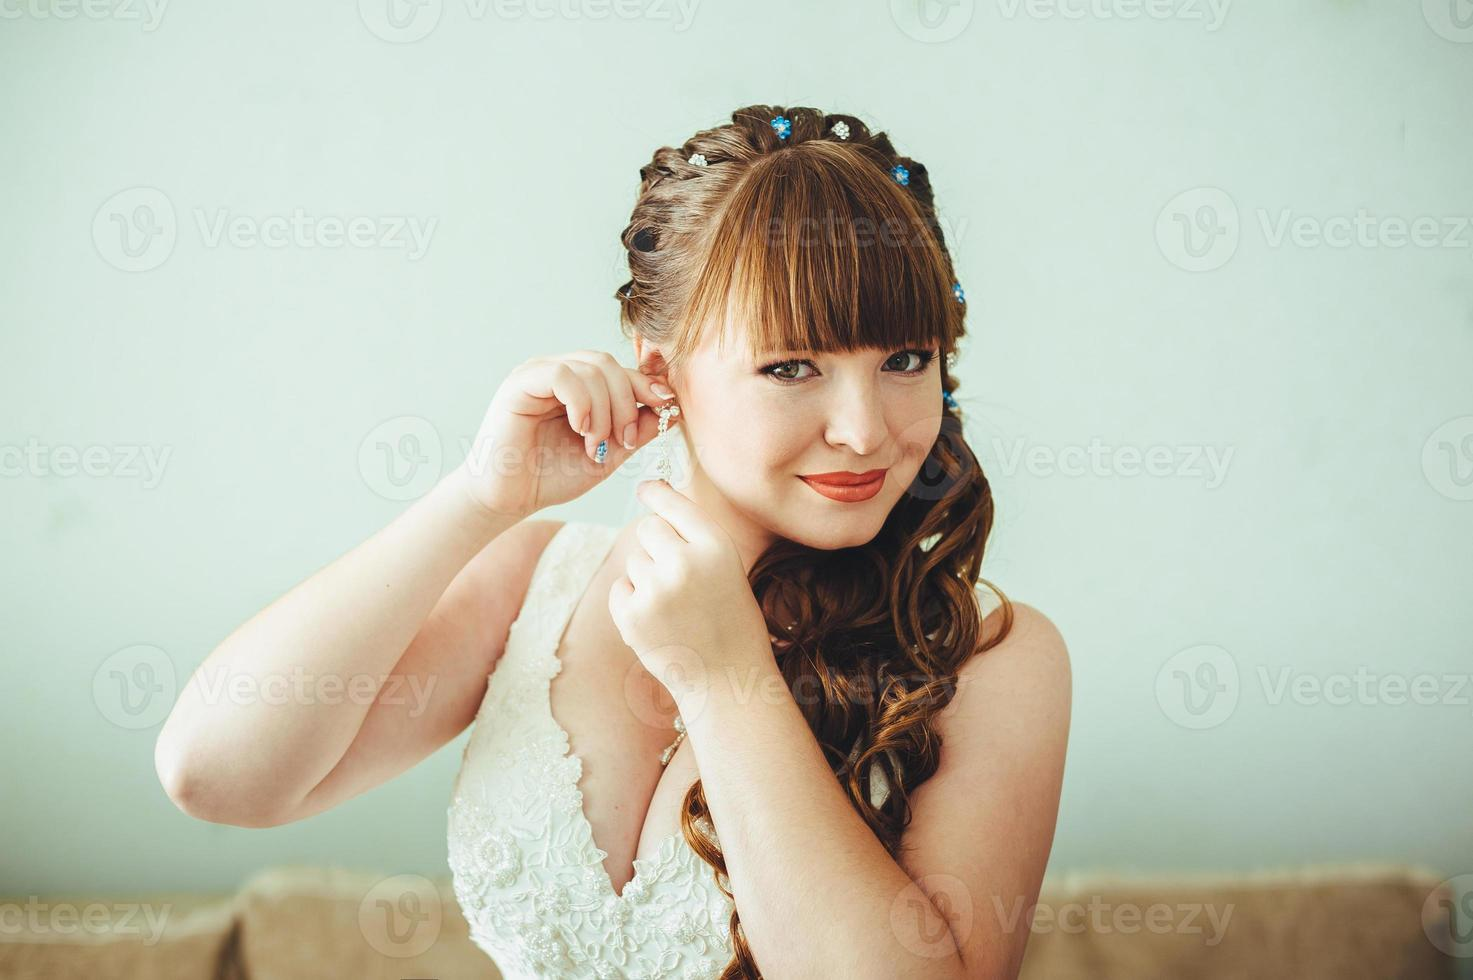 Bride getting ready in the morning. Woman dressing gown photo